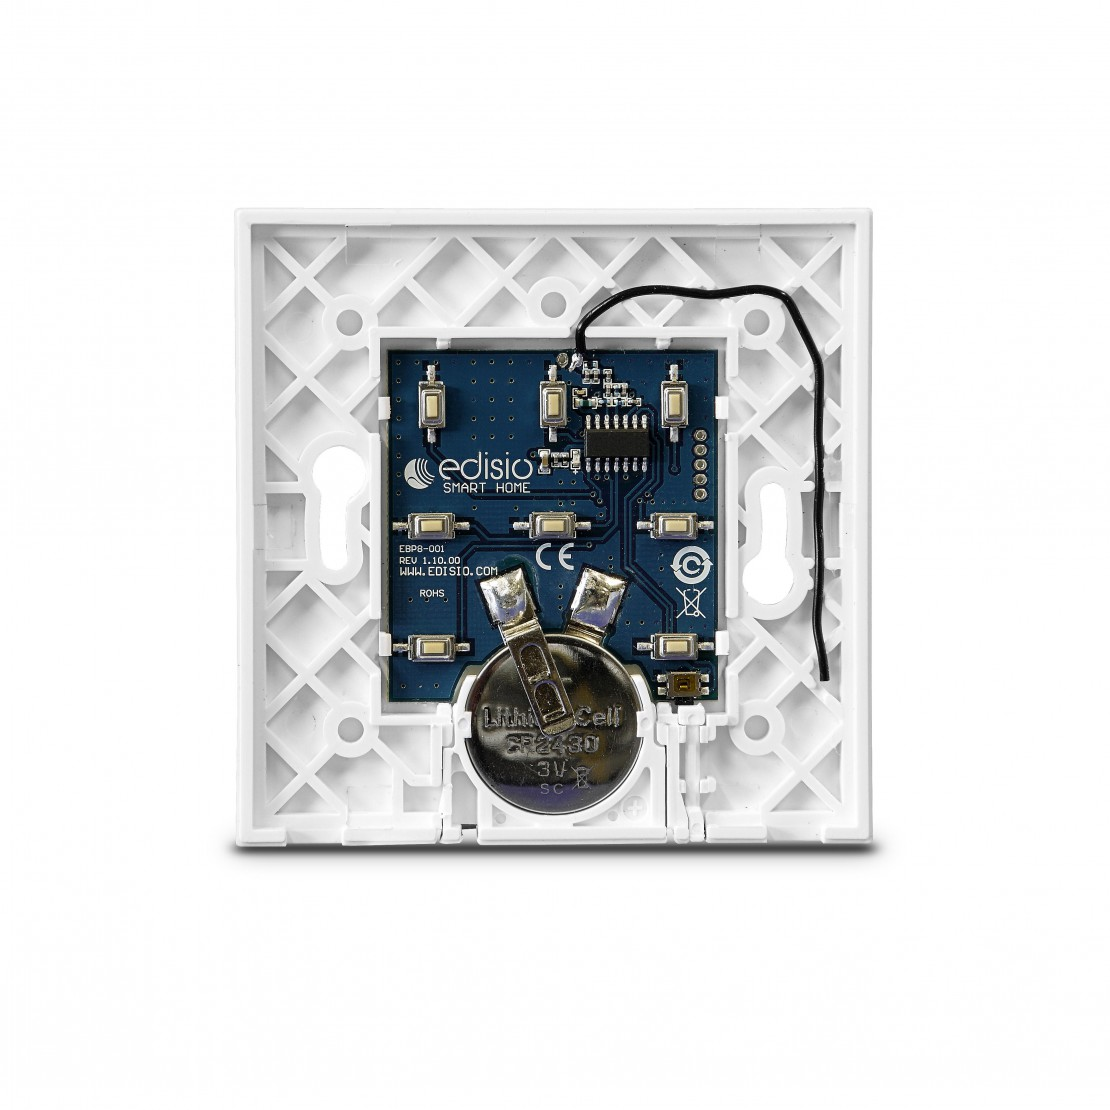 White base for Edisio switch (1 to 5 channels)